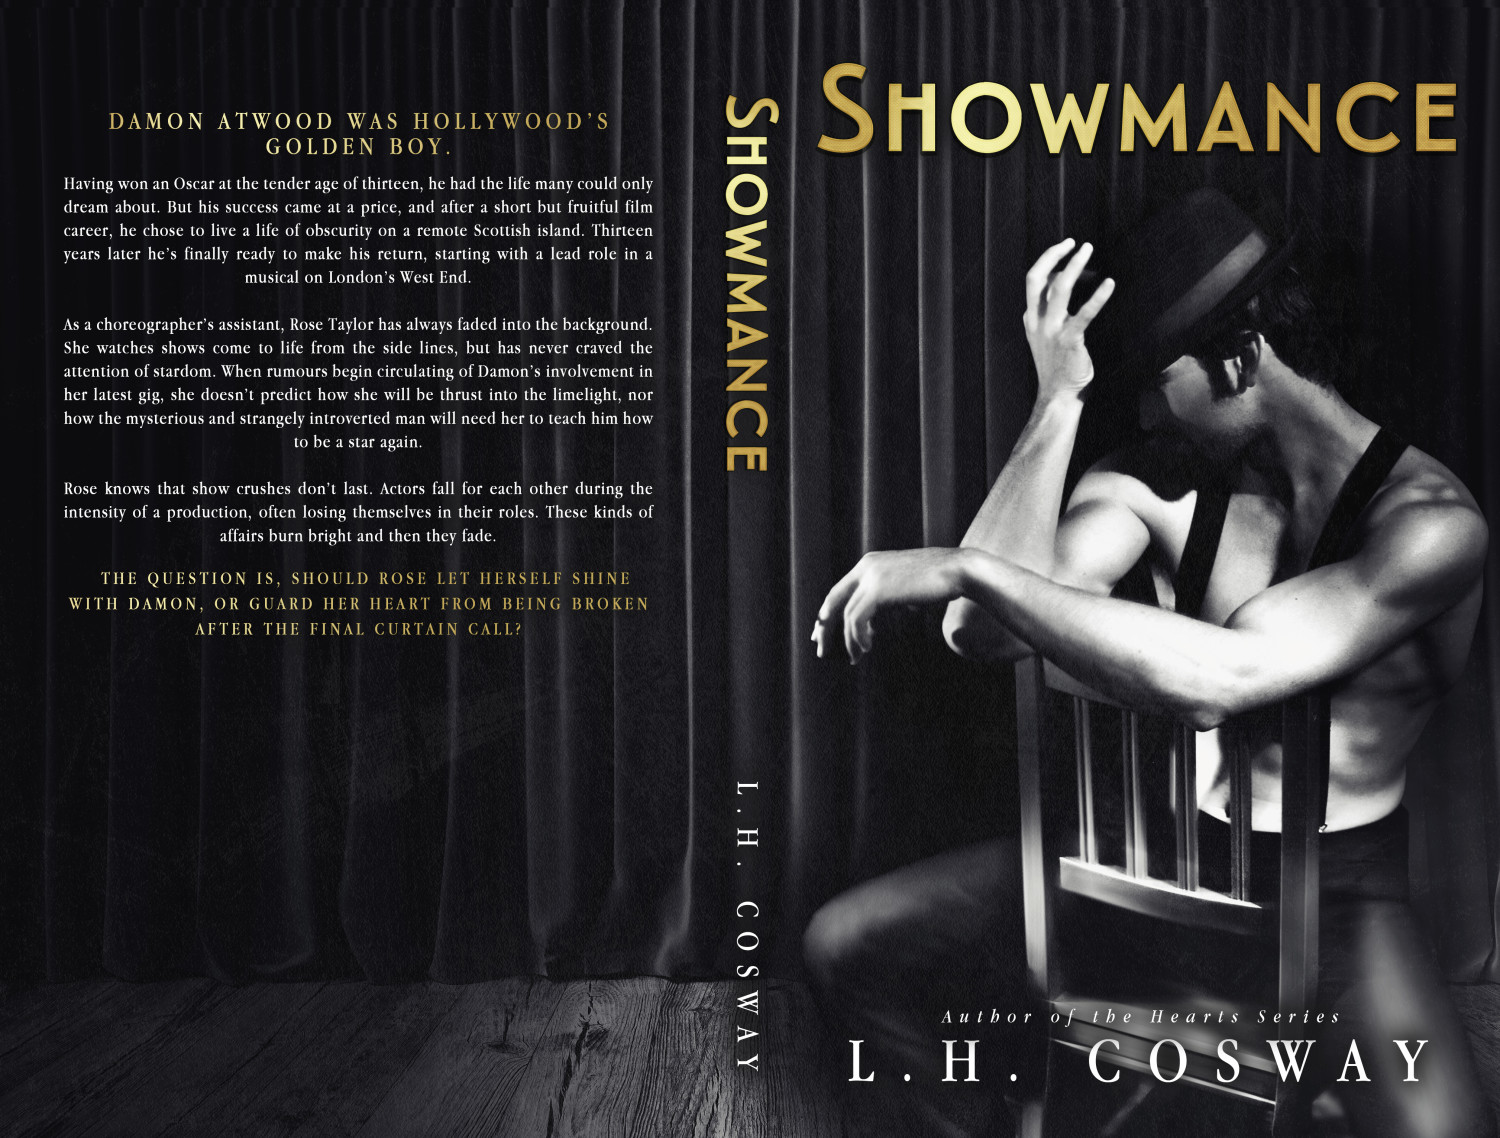 Showmance_L.H. Cosway_Cover Wrap